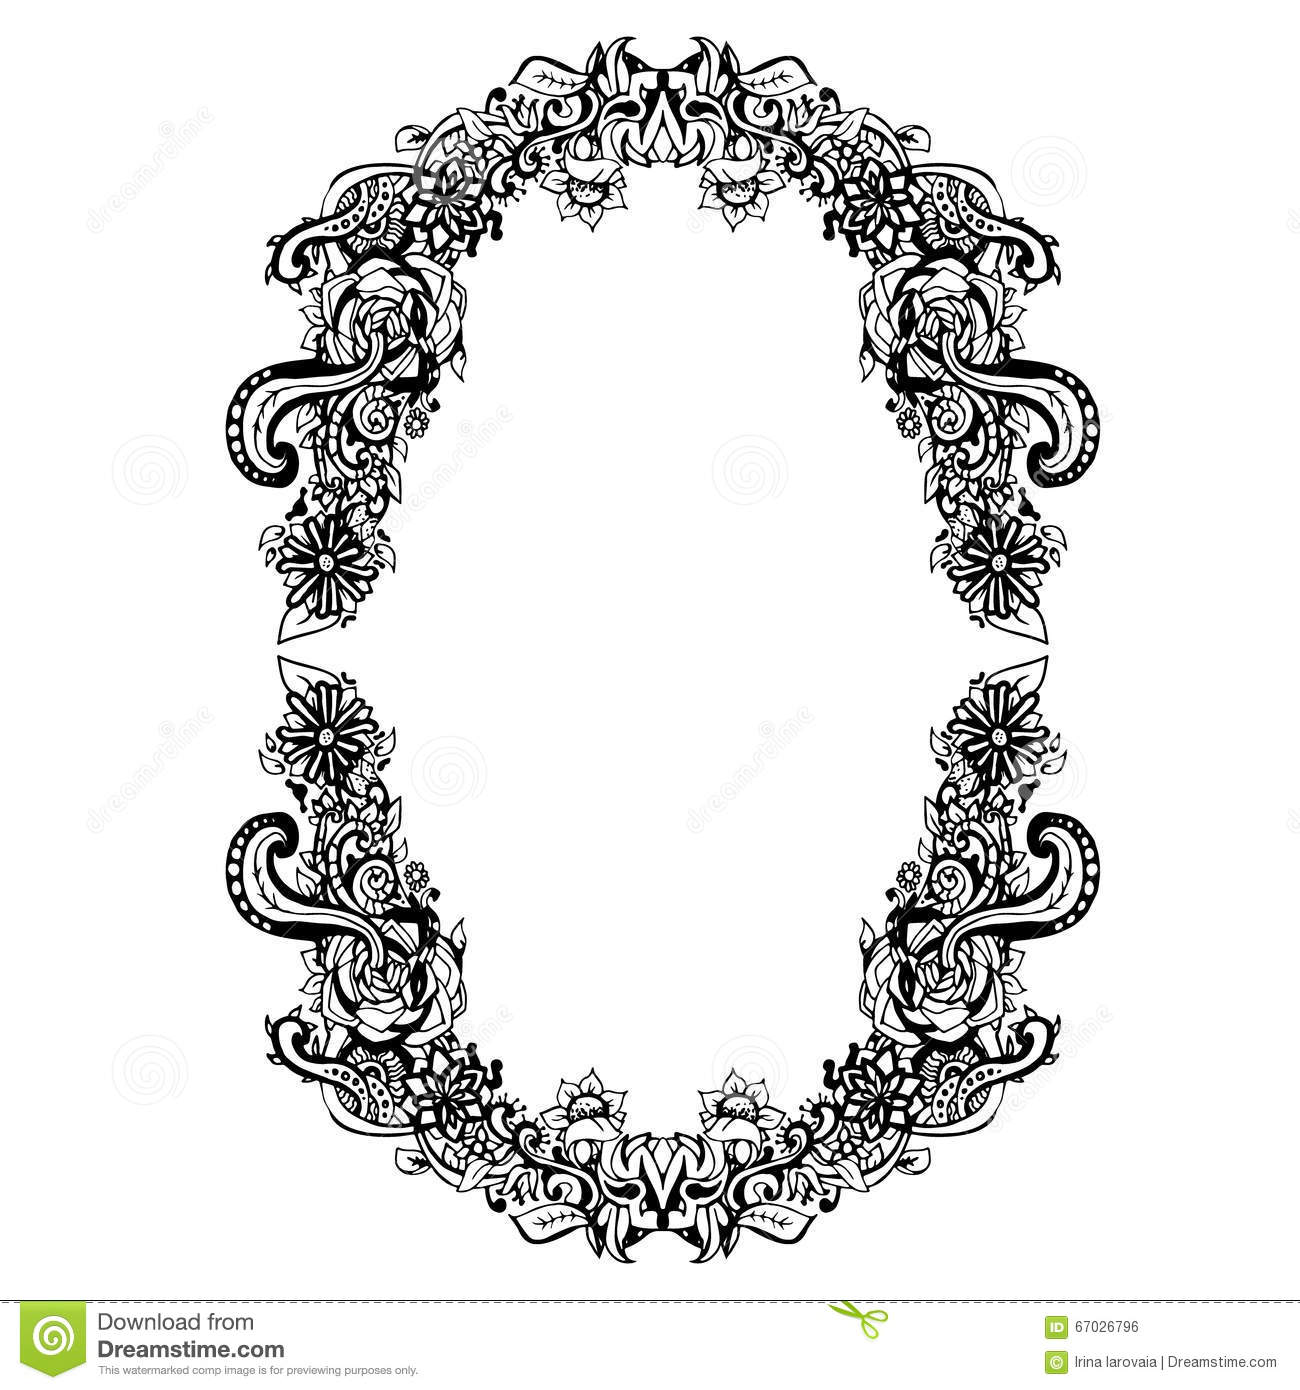 Abstract Black And White Floral Frame Vector Illustration Graphic Doodle